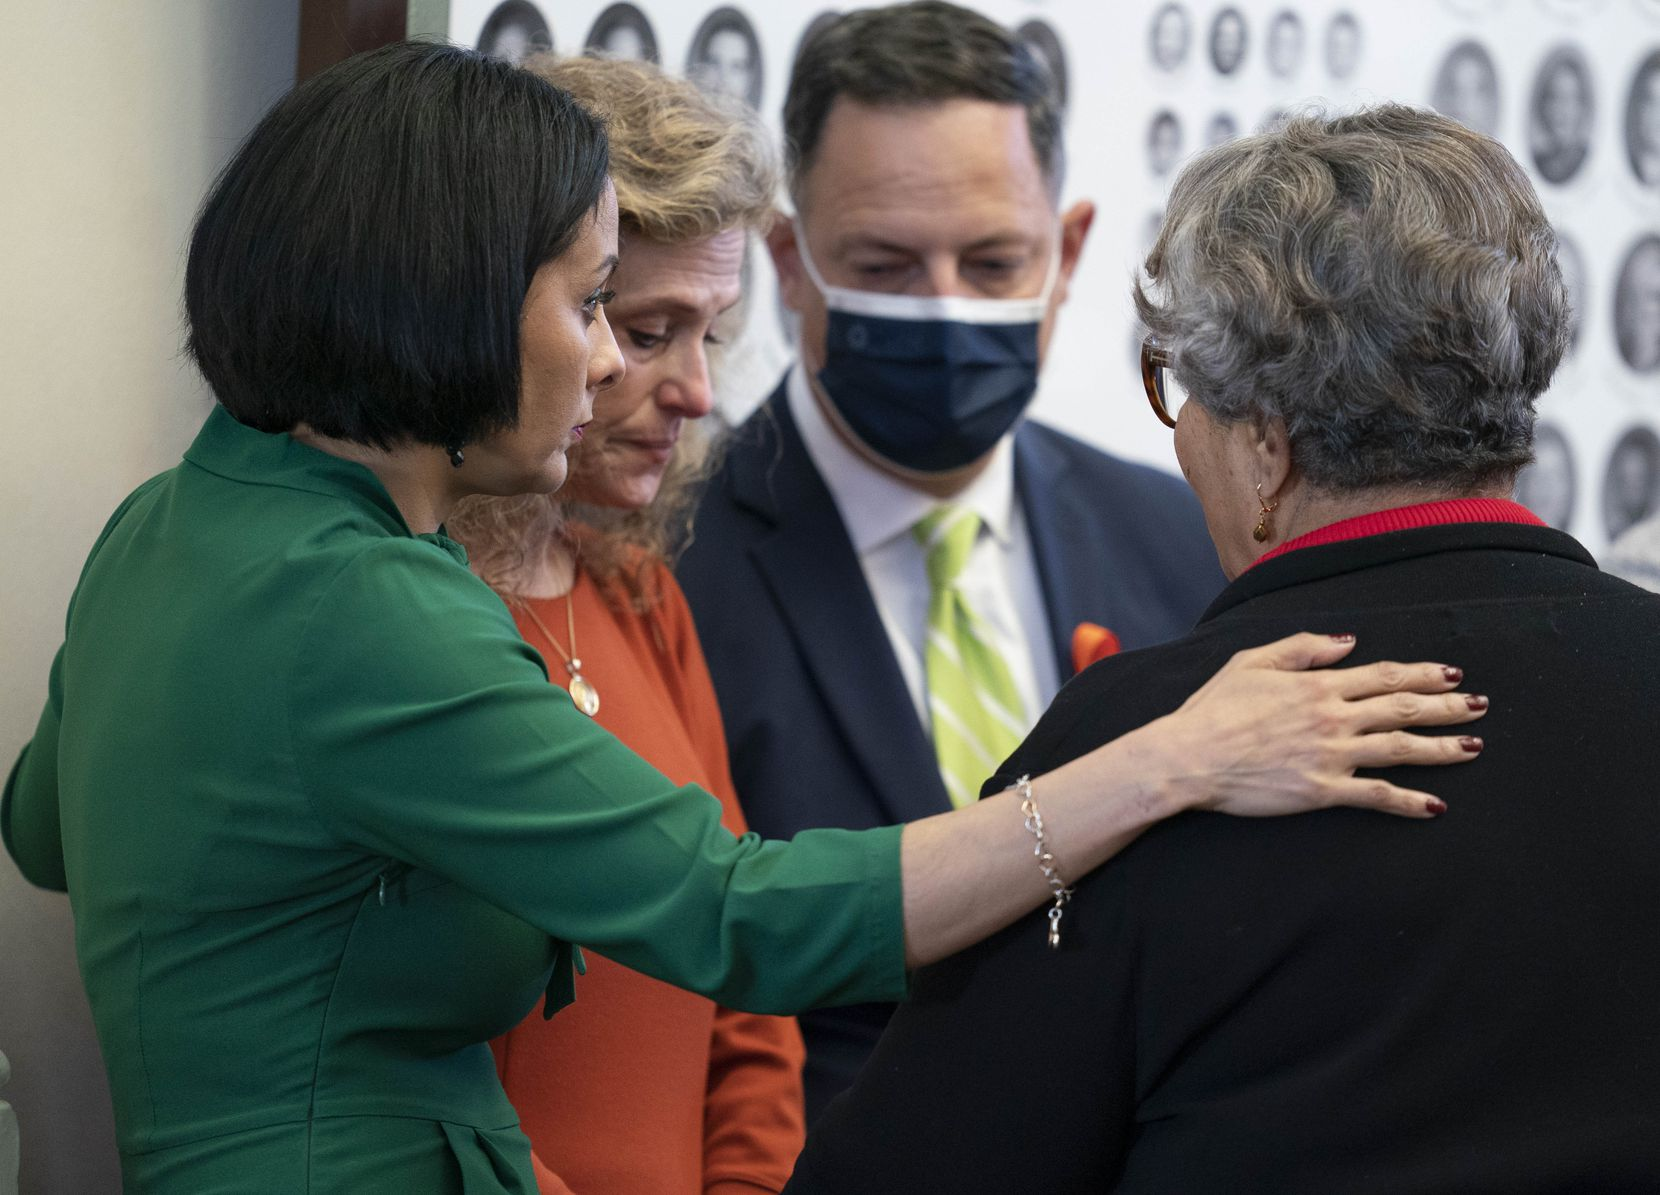 """Democratic colleagues surround state Rep. Donna Howard (in orange) after she challenged Republican sponsors of SB 8, the fetal """"heartbeat bill,"""" Wednesday in the Texas House. The bill passed second reading, 81-63, and is scheduled for a final vote that would send it to Gov. Greg Abbott's desk."""